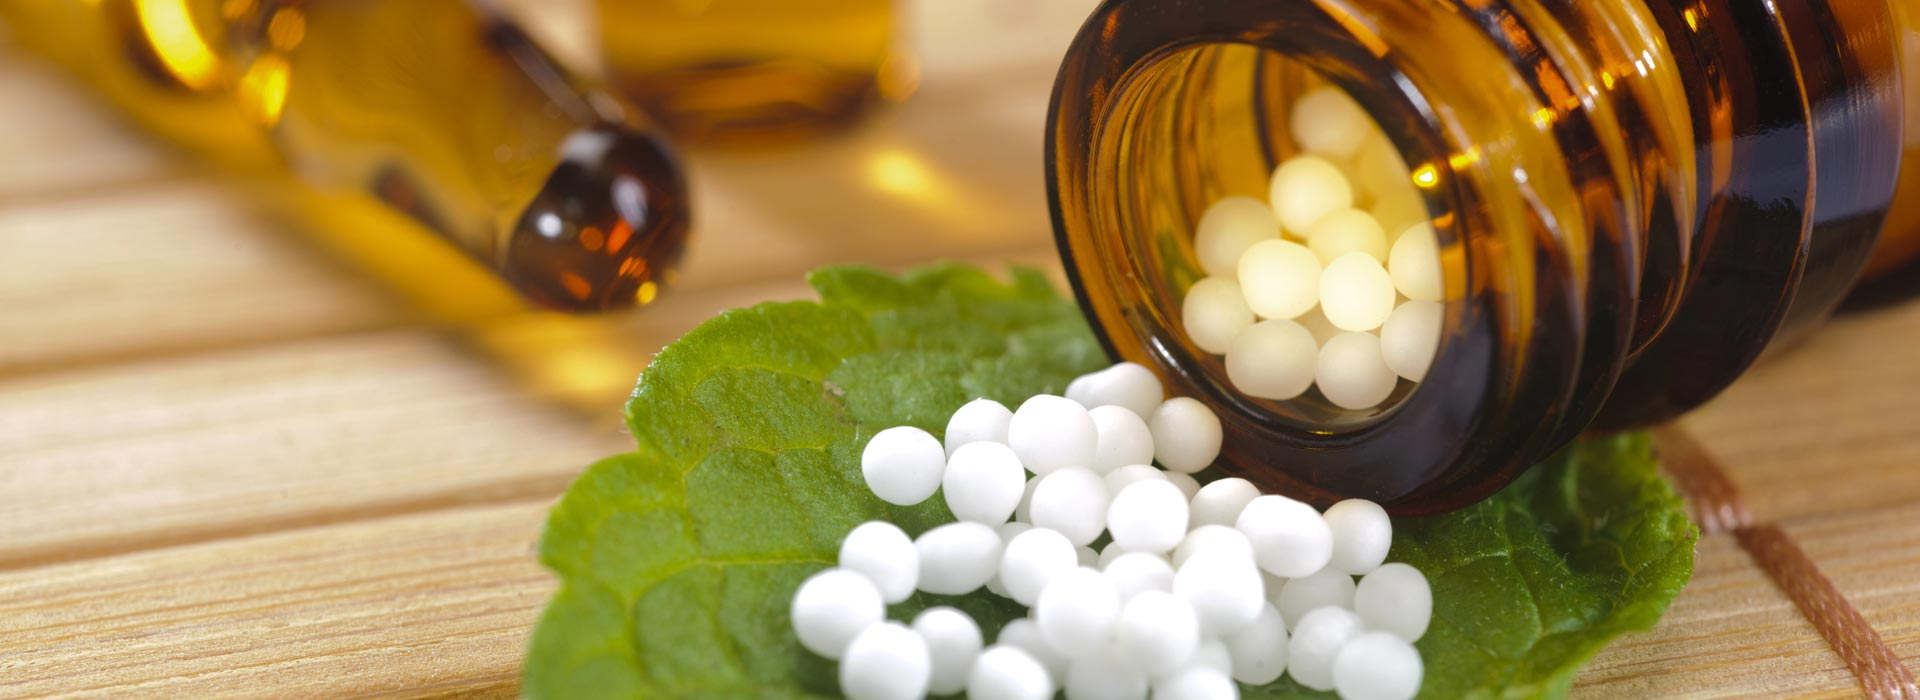 Homeopathy - A healing science